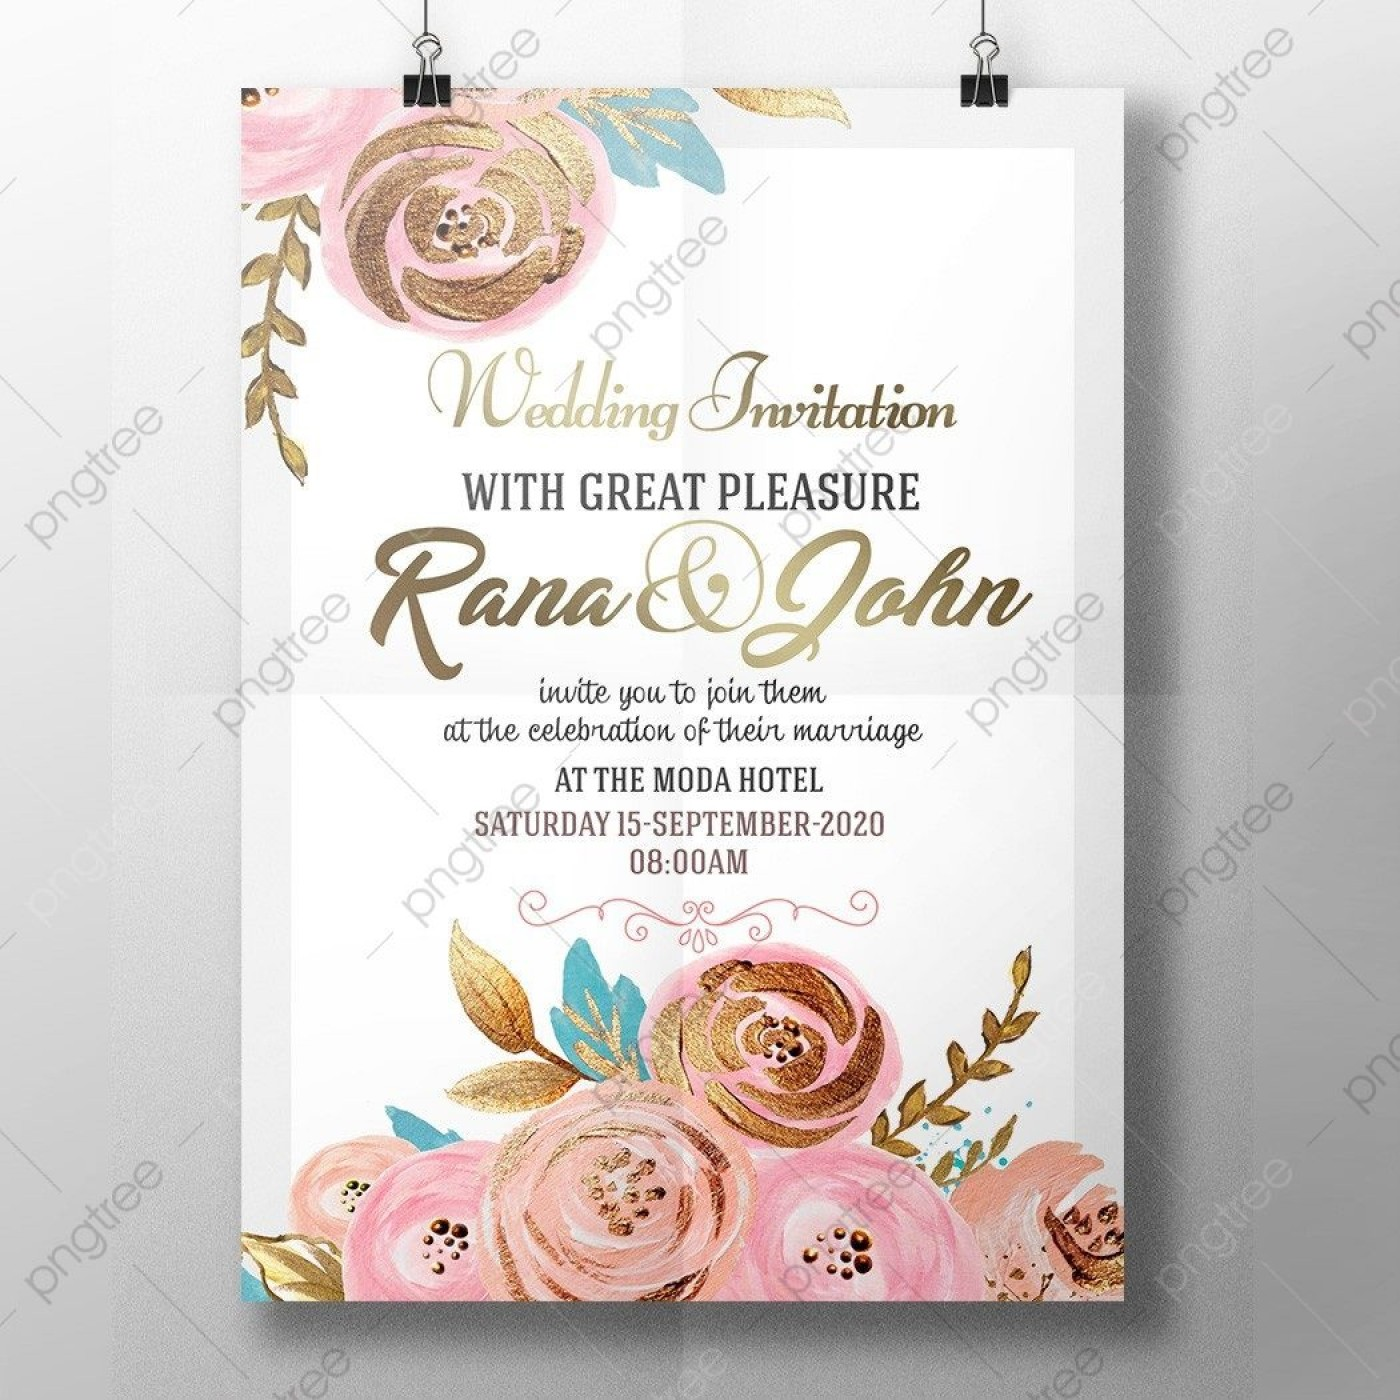 005 Wondrou Free Download Marriage Invitation Template High Definition  Card Design Psd After Effect1400